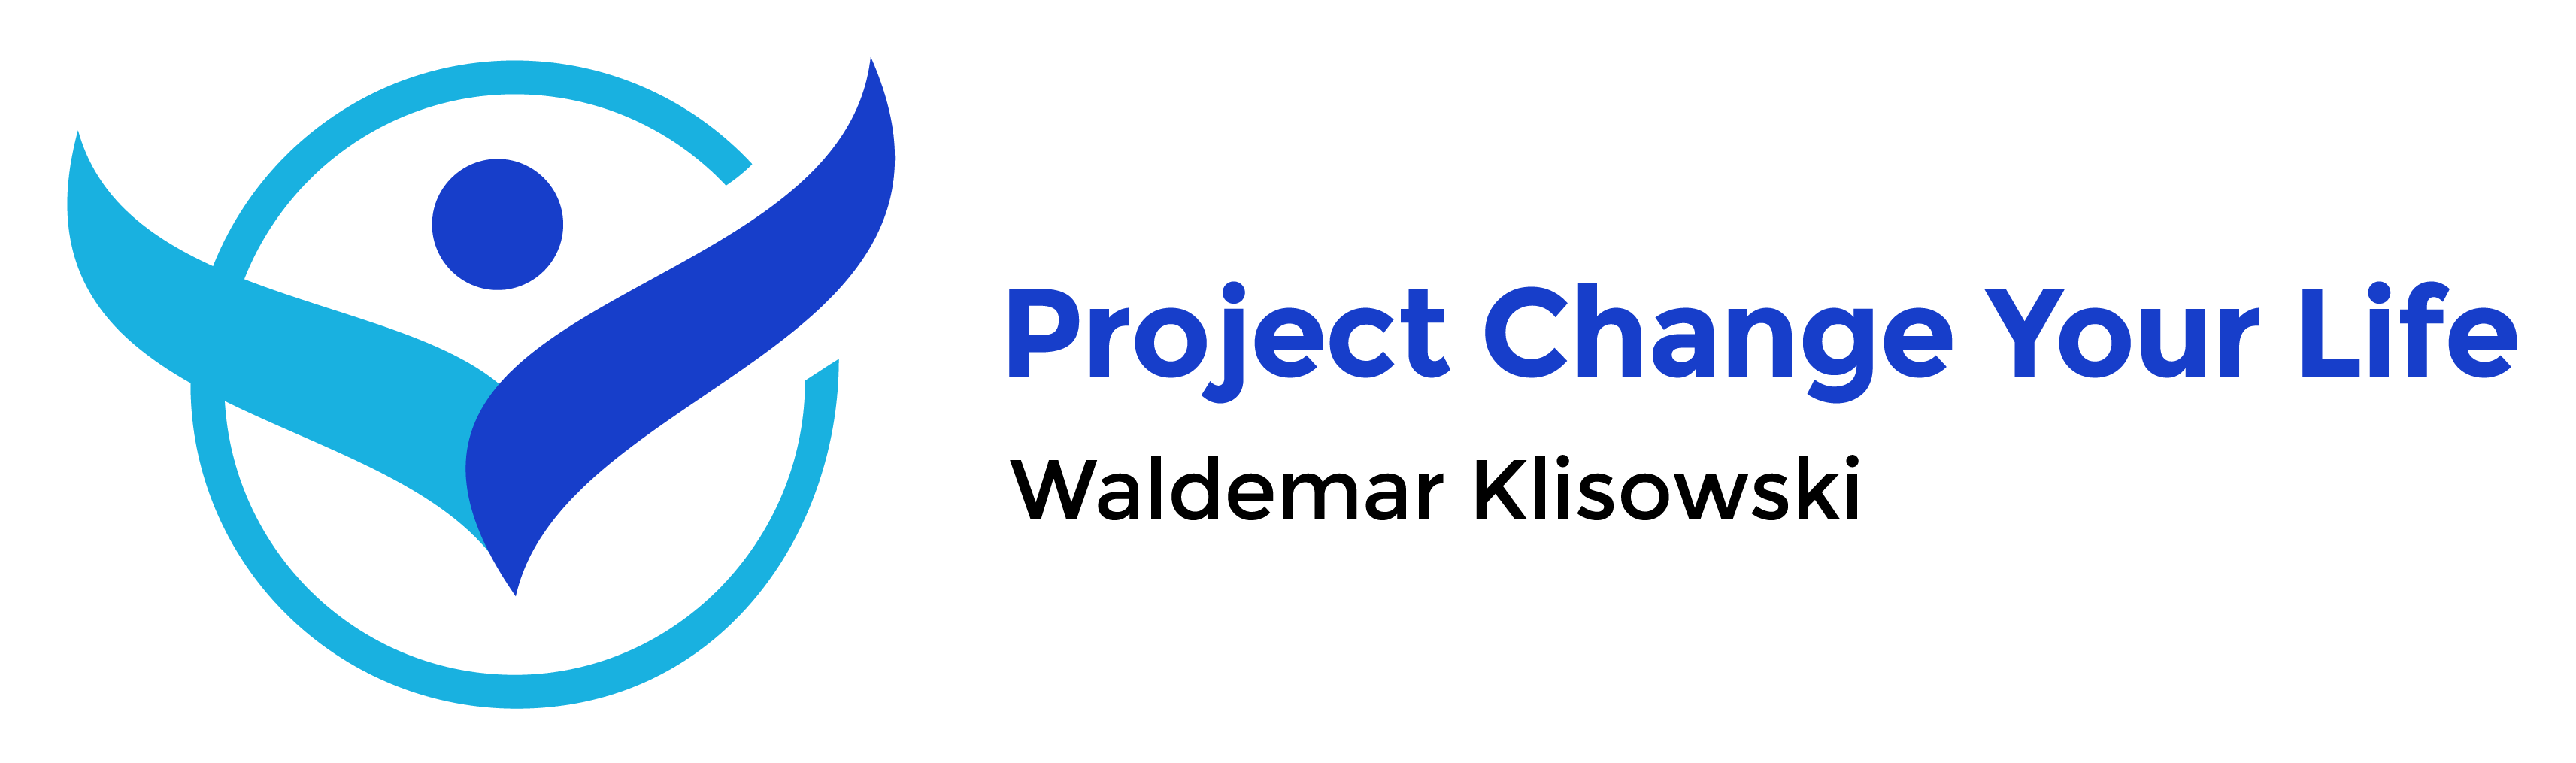 Project Change Your Life